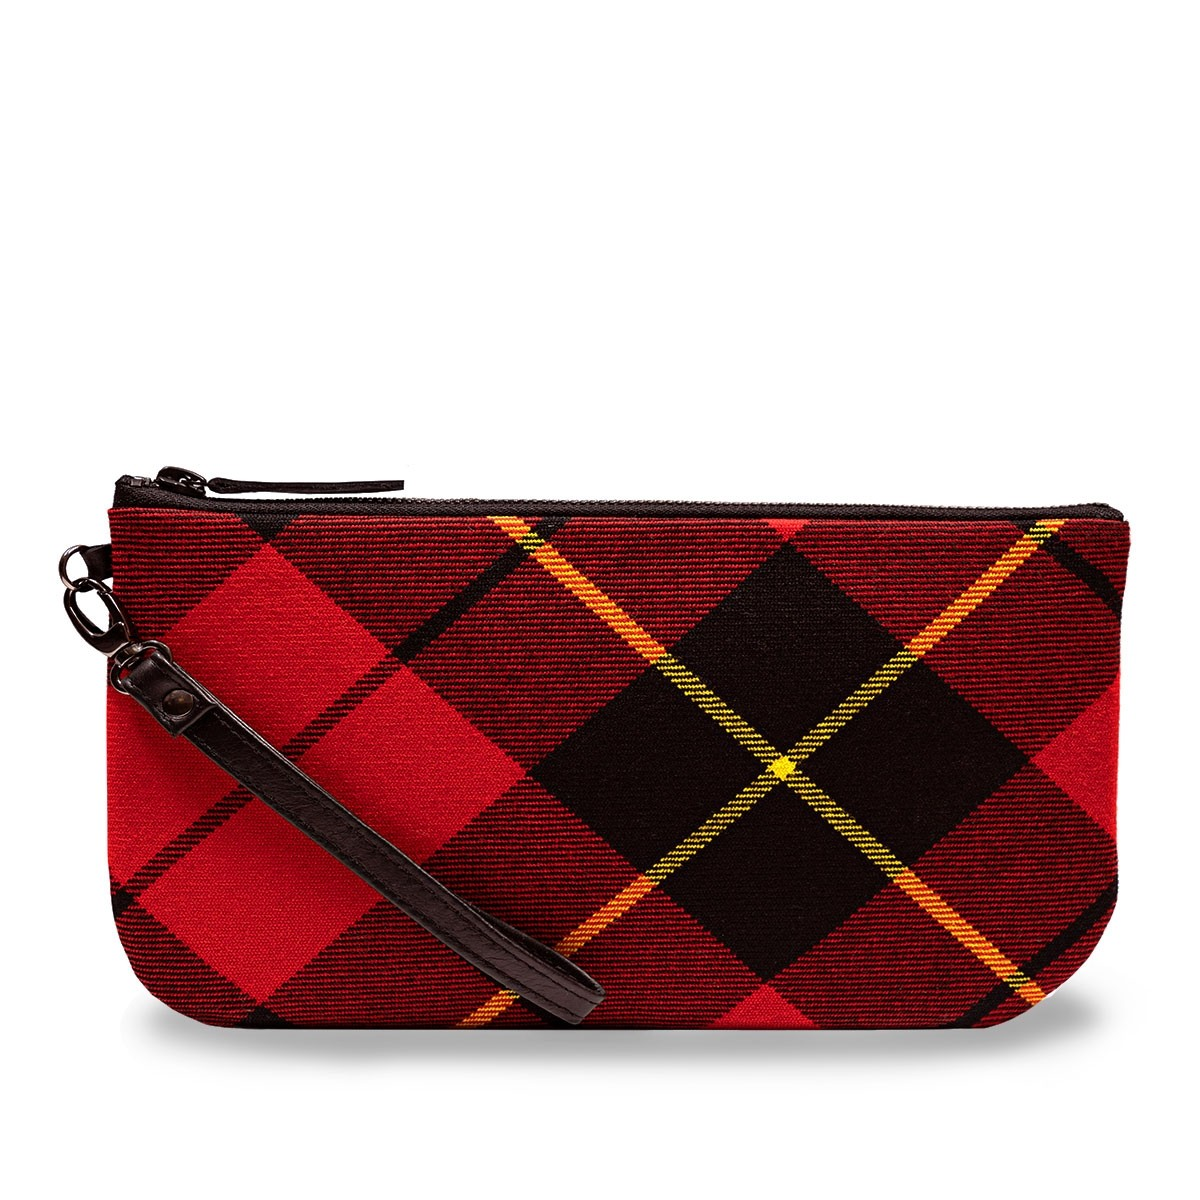 Wallace Modern Tartan & Black Leather Clutch Bag